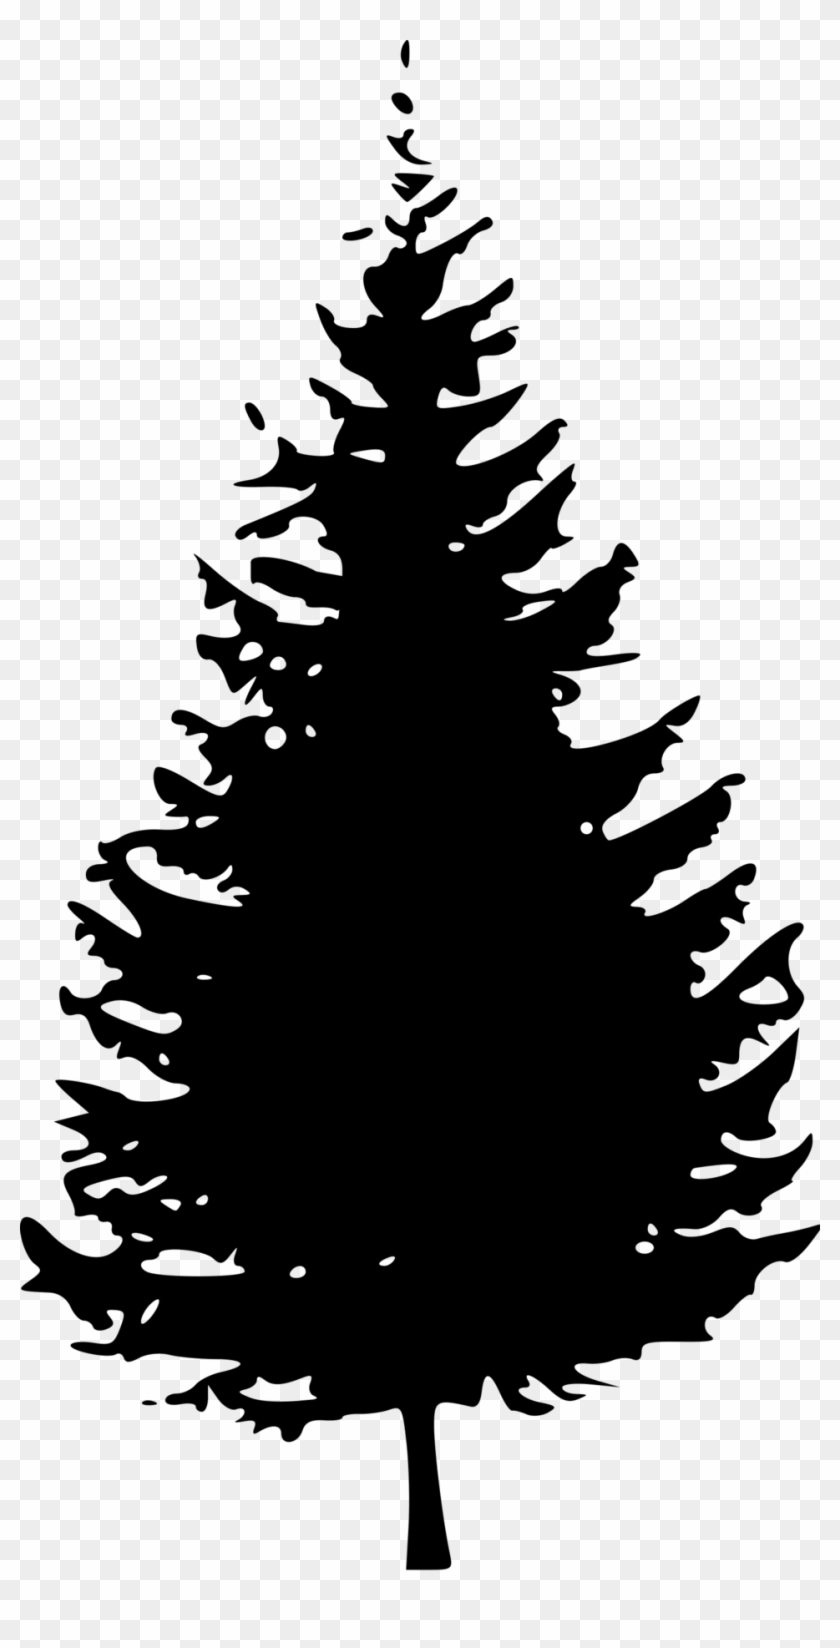 Transparent Tree Cliparts 18, - Pine Tree Clip Art Black And White #401604